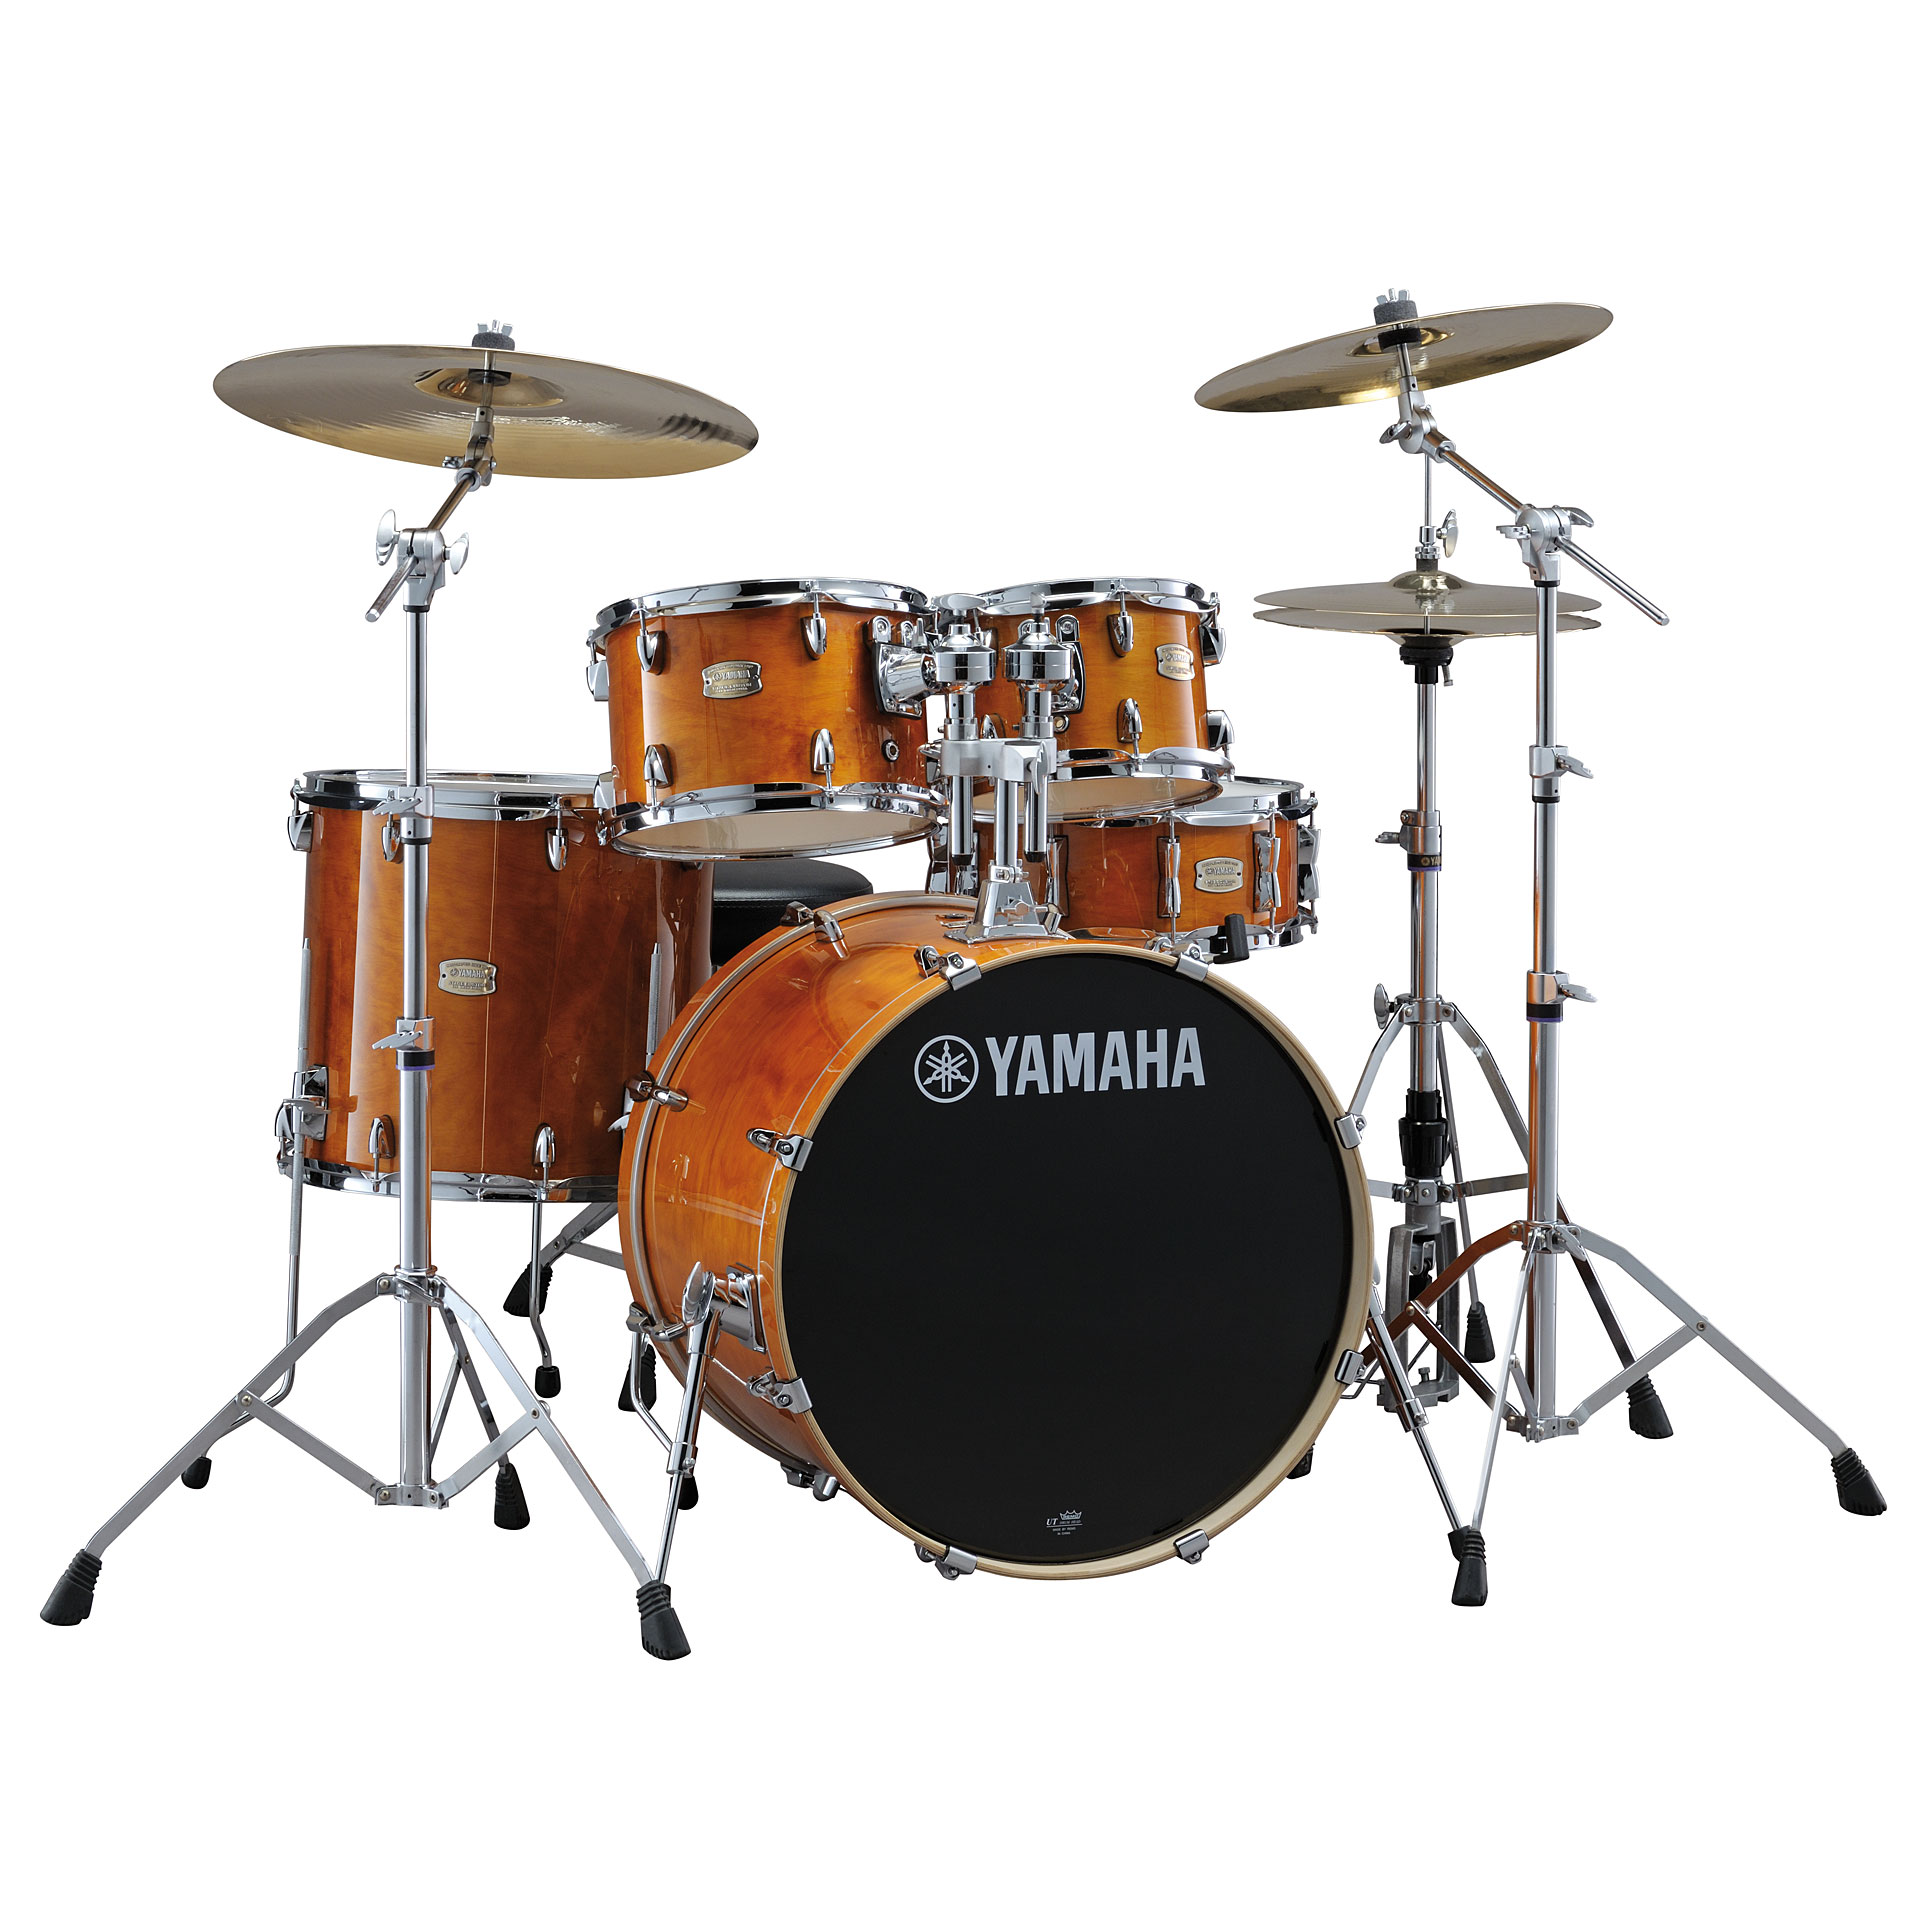 Yamaha Custom Birch Drum Set